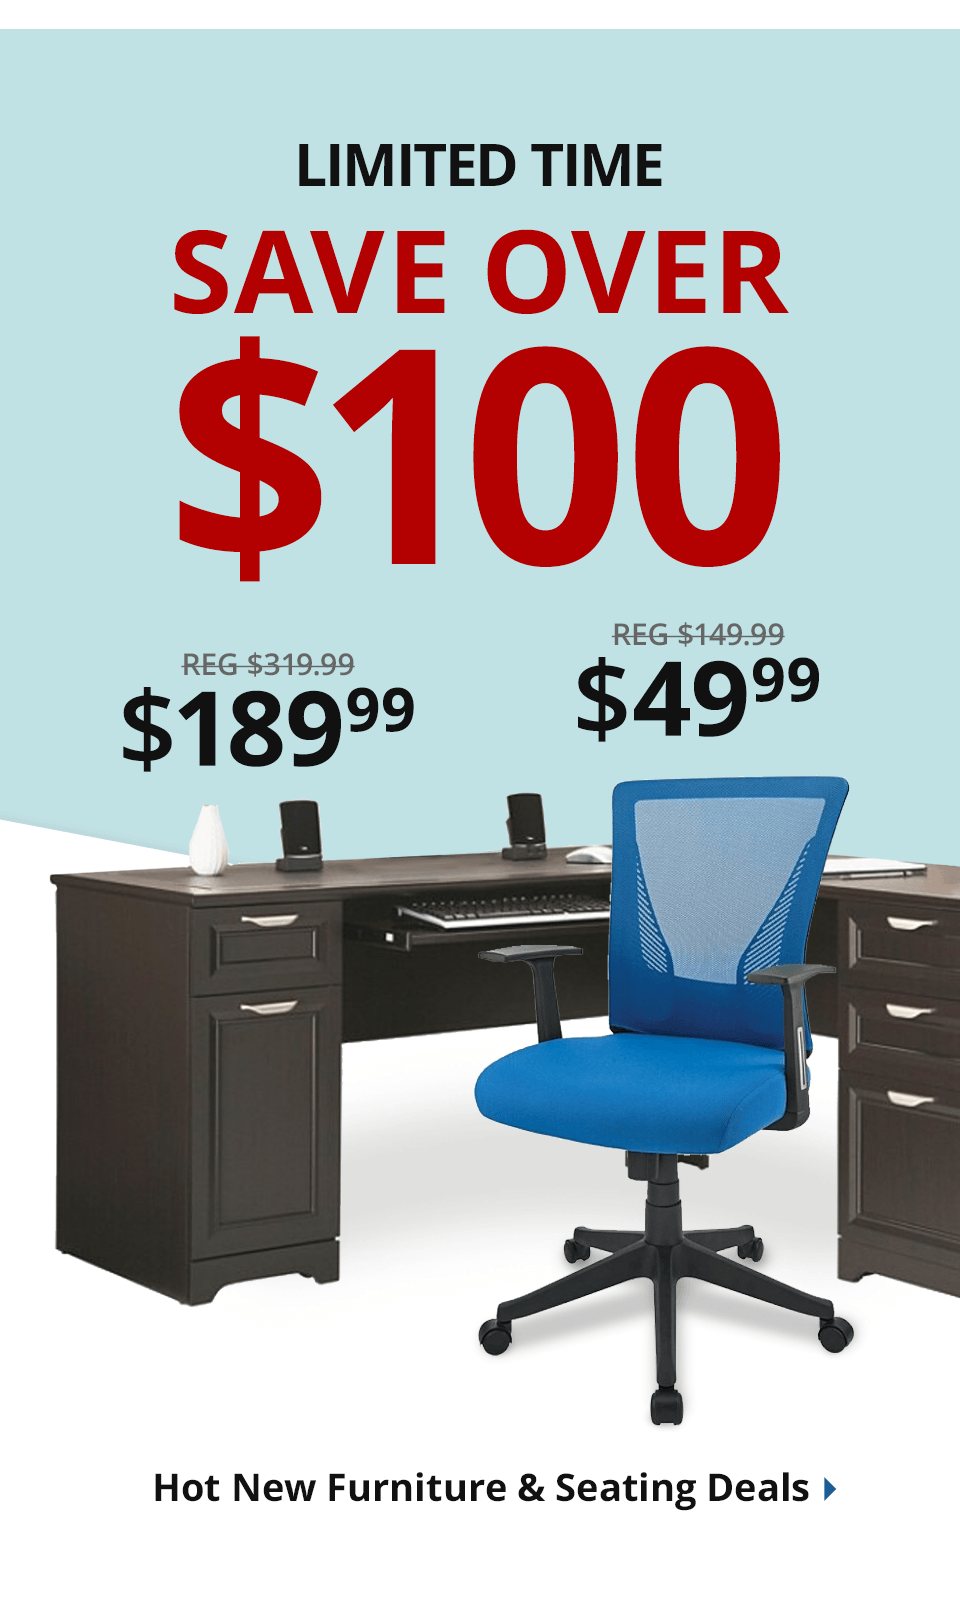 Save over $100 on select furniture & seating